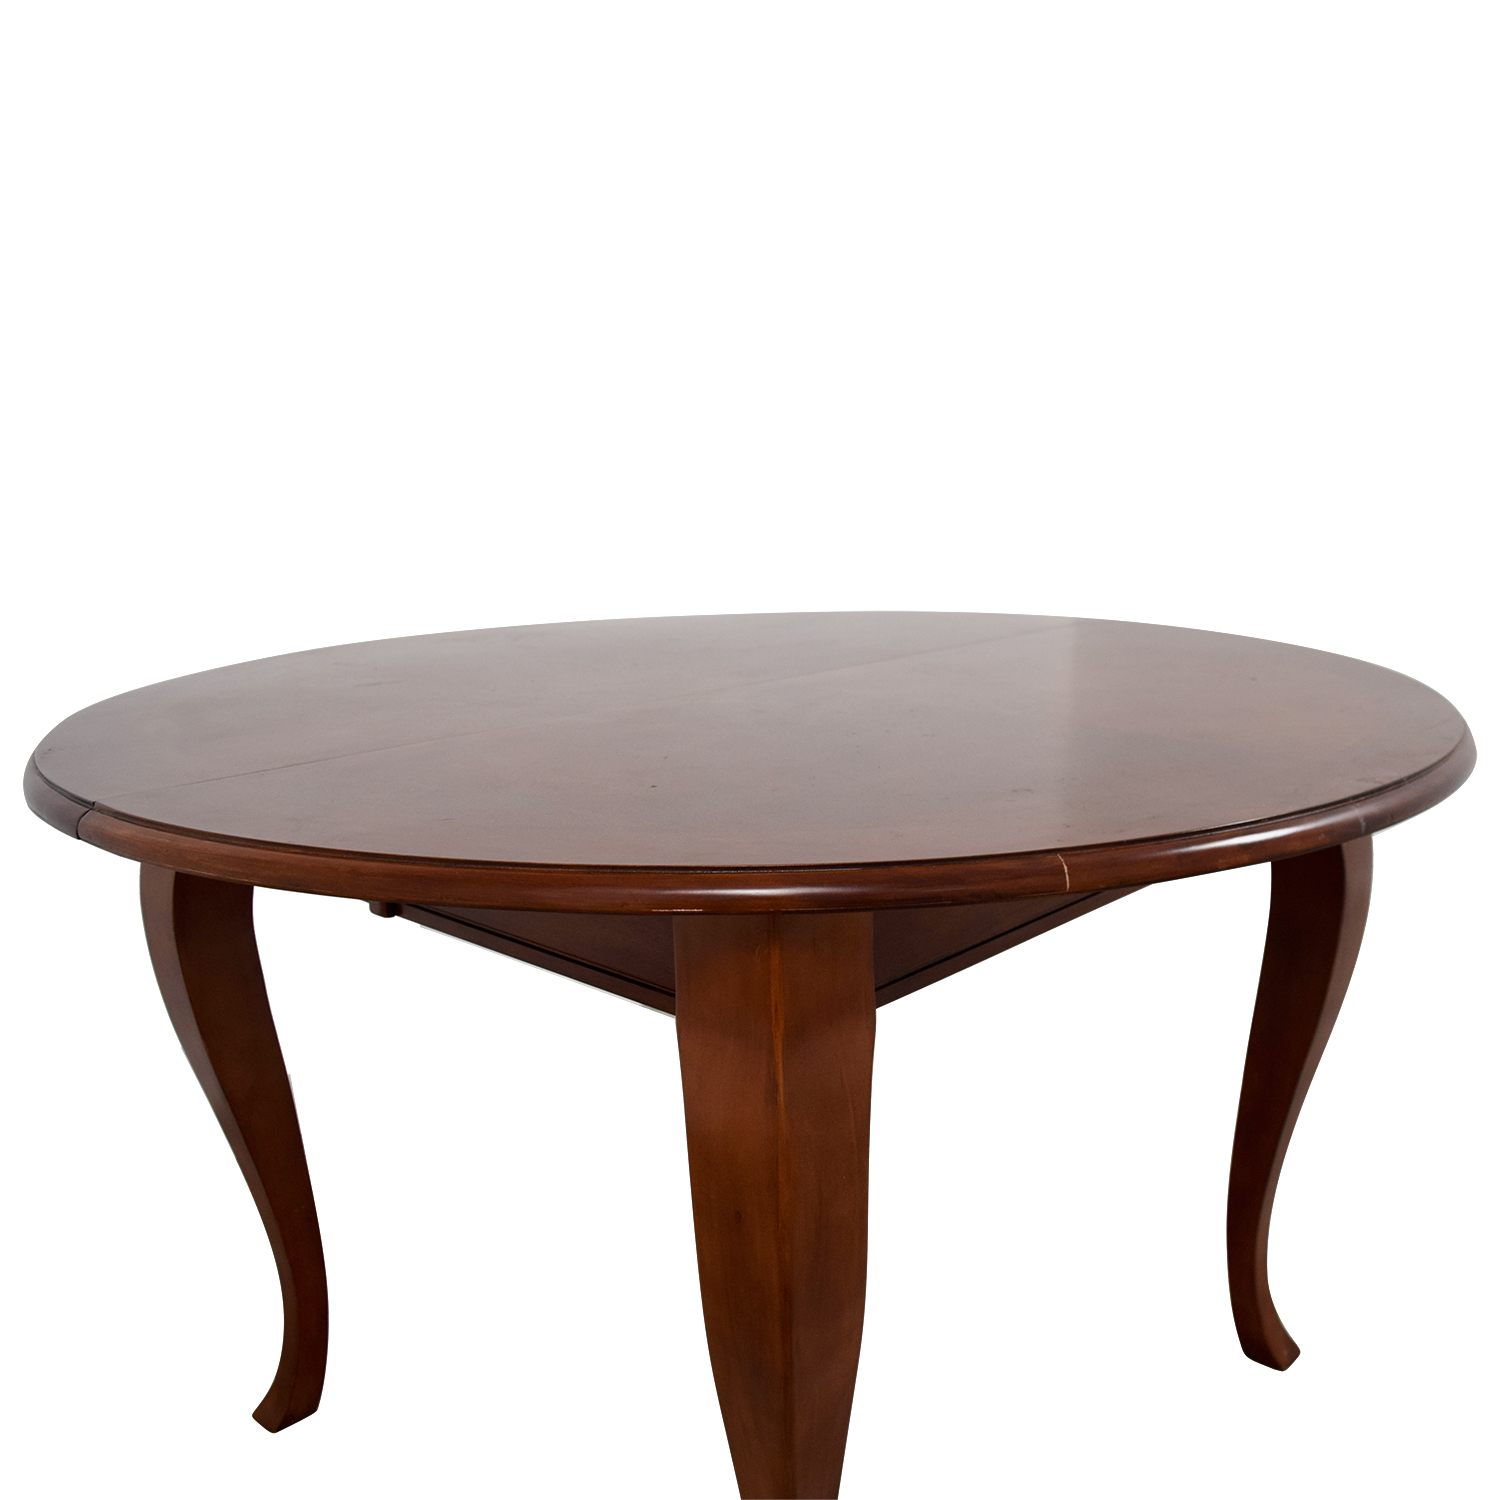 buy Broyhill Broyhill Wooden Dining Room Table online